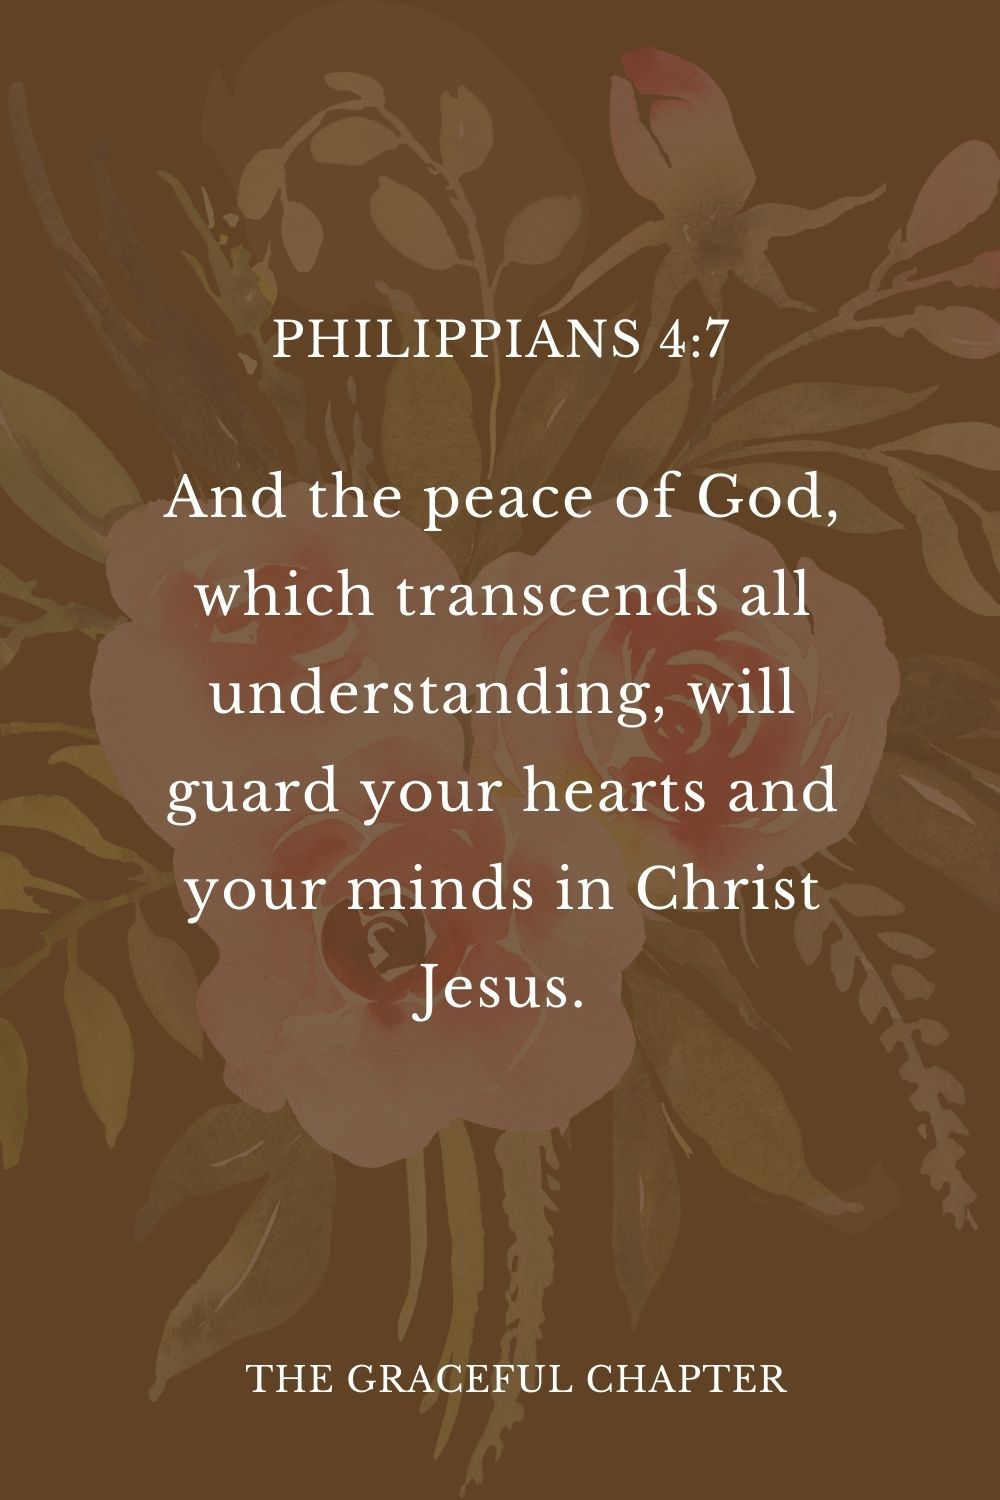 And the peace of God, which transcends all understanding, will guard your hearts and your minds in Christ Jesus. Philippians 4:7